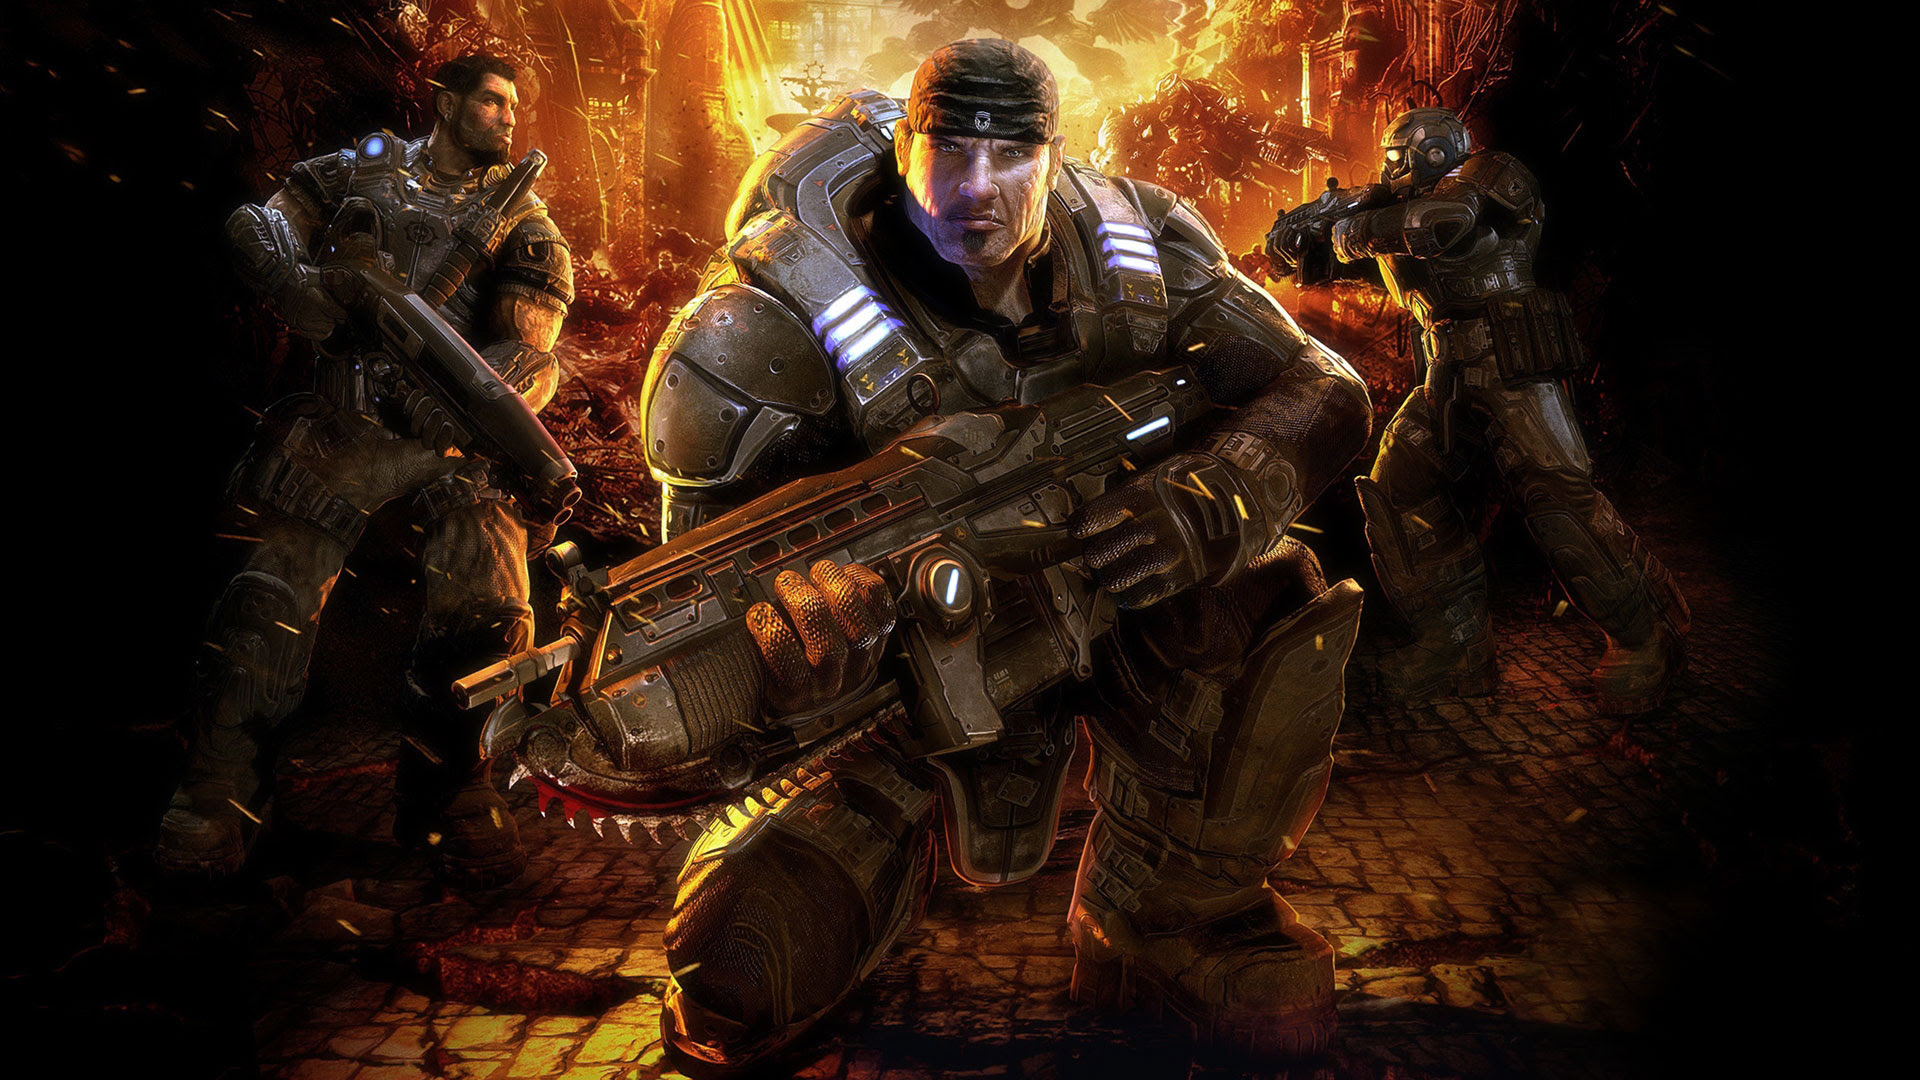 Gears Of War Wallpaper Digital Gears Of War Image 16034